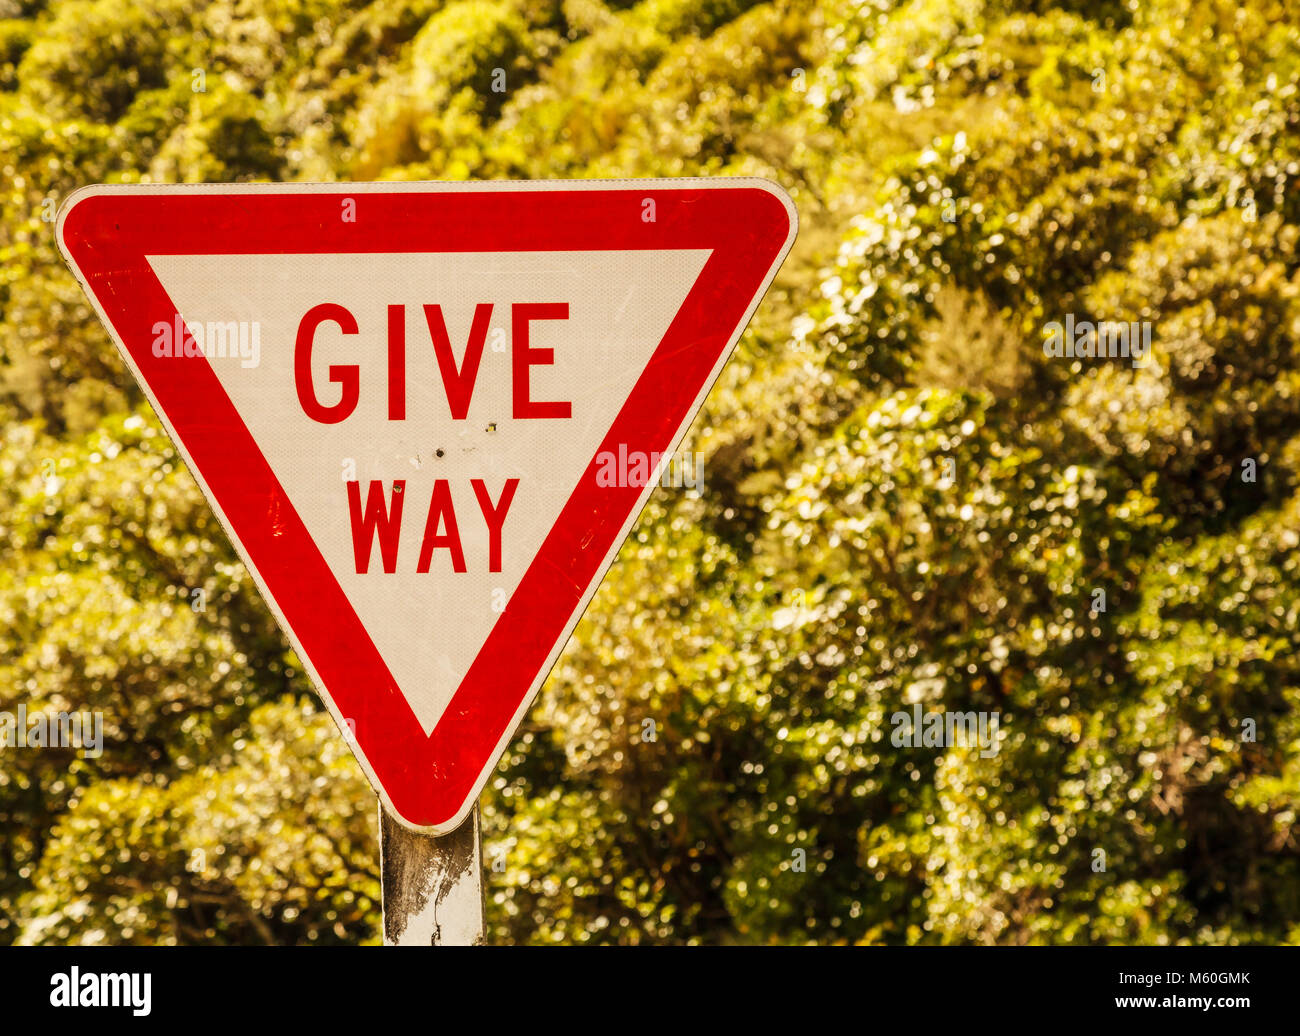 Give Way Triangular Shaped street traffic sign on the rural road area in the nature of New Zealand scenic driving - Stock Image